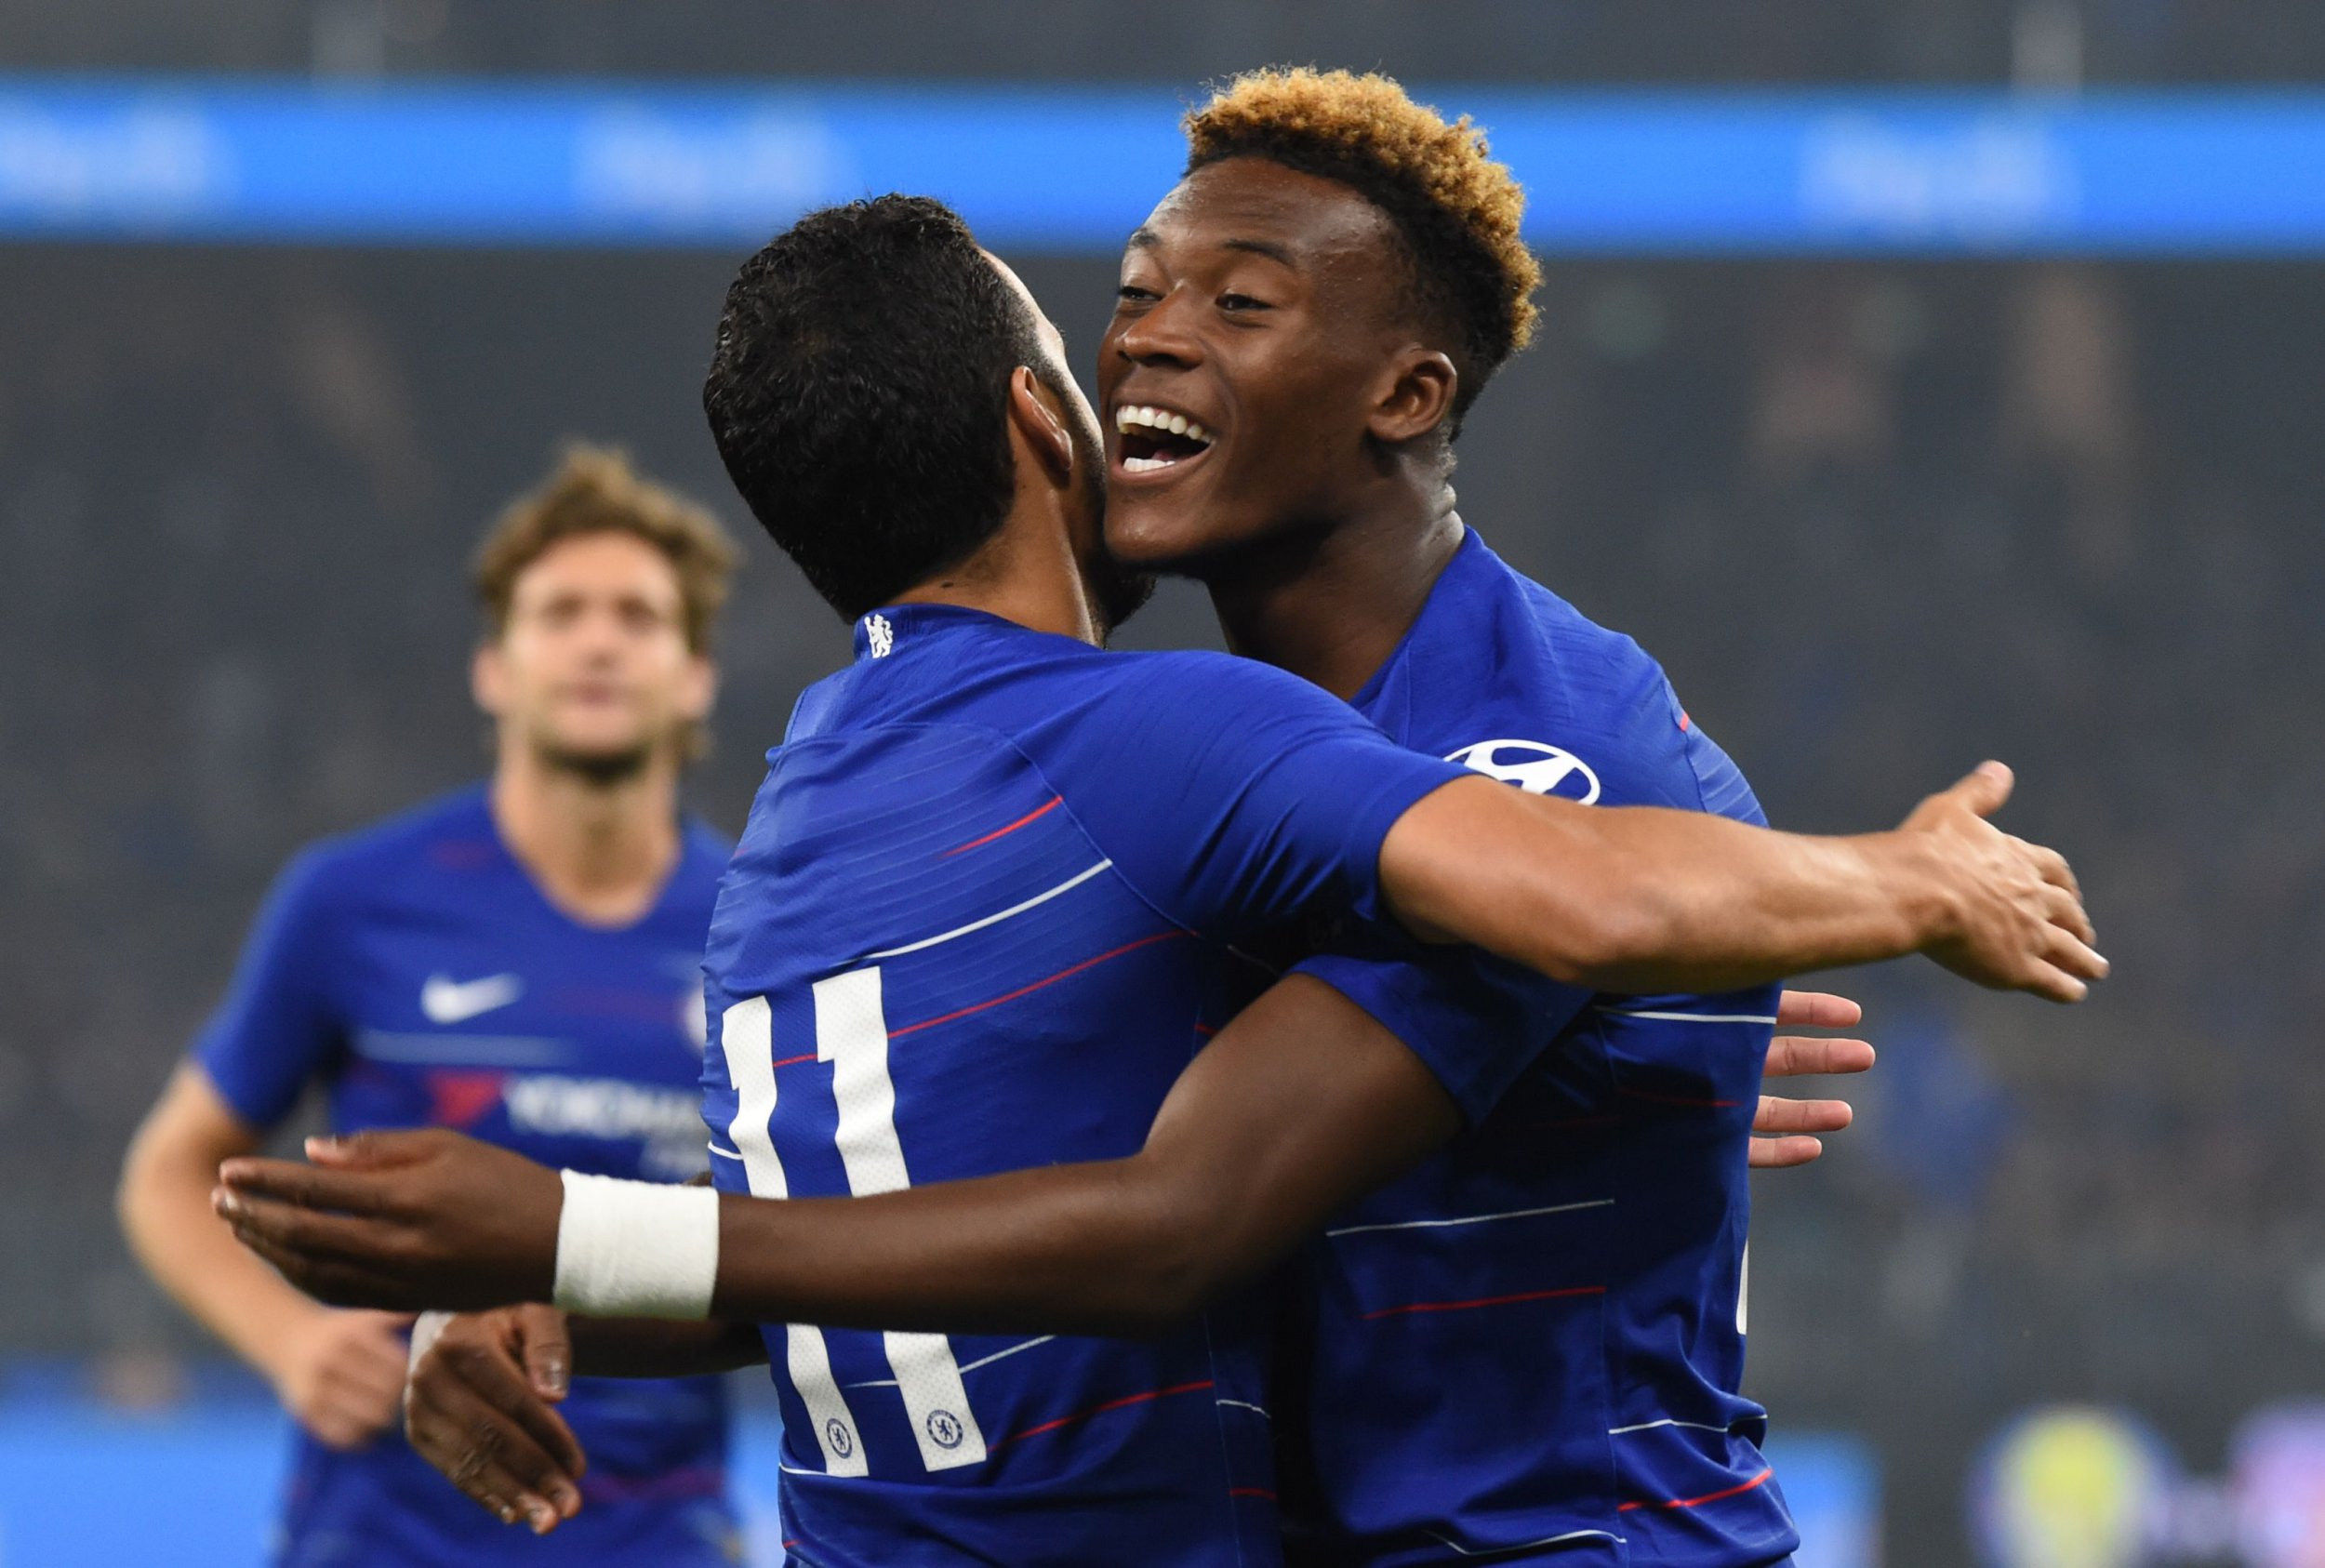 Chelsea's Callum Hudson-Odoi (R) celebrates with teammate Pedro after his cross helped in scoring his team's first goal against Perth Glory during their friendly football match at Optus stadium in Perth on July 23, 2018. / AFP PHOTO / Greg Wood / -- IMAGE RESTRICTED TO EDITORIAL USE - STRICTLY NO COMMERCIAL USE --GREG WOOD/AFP/Getty Images